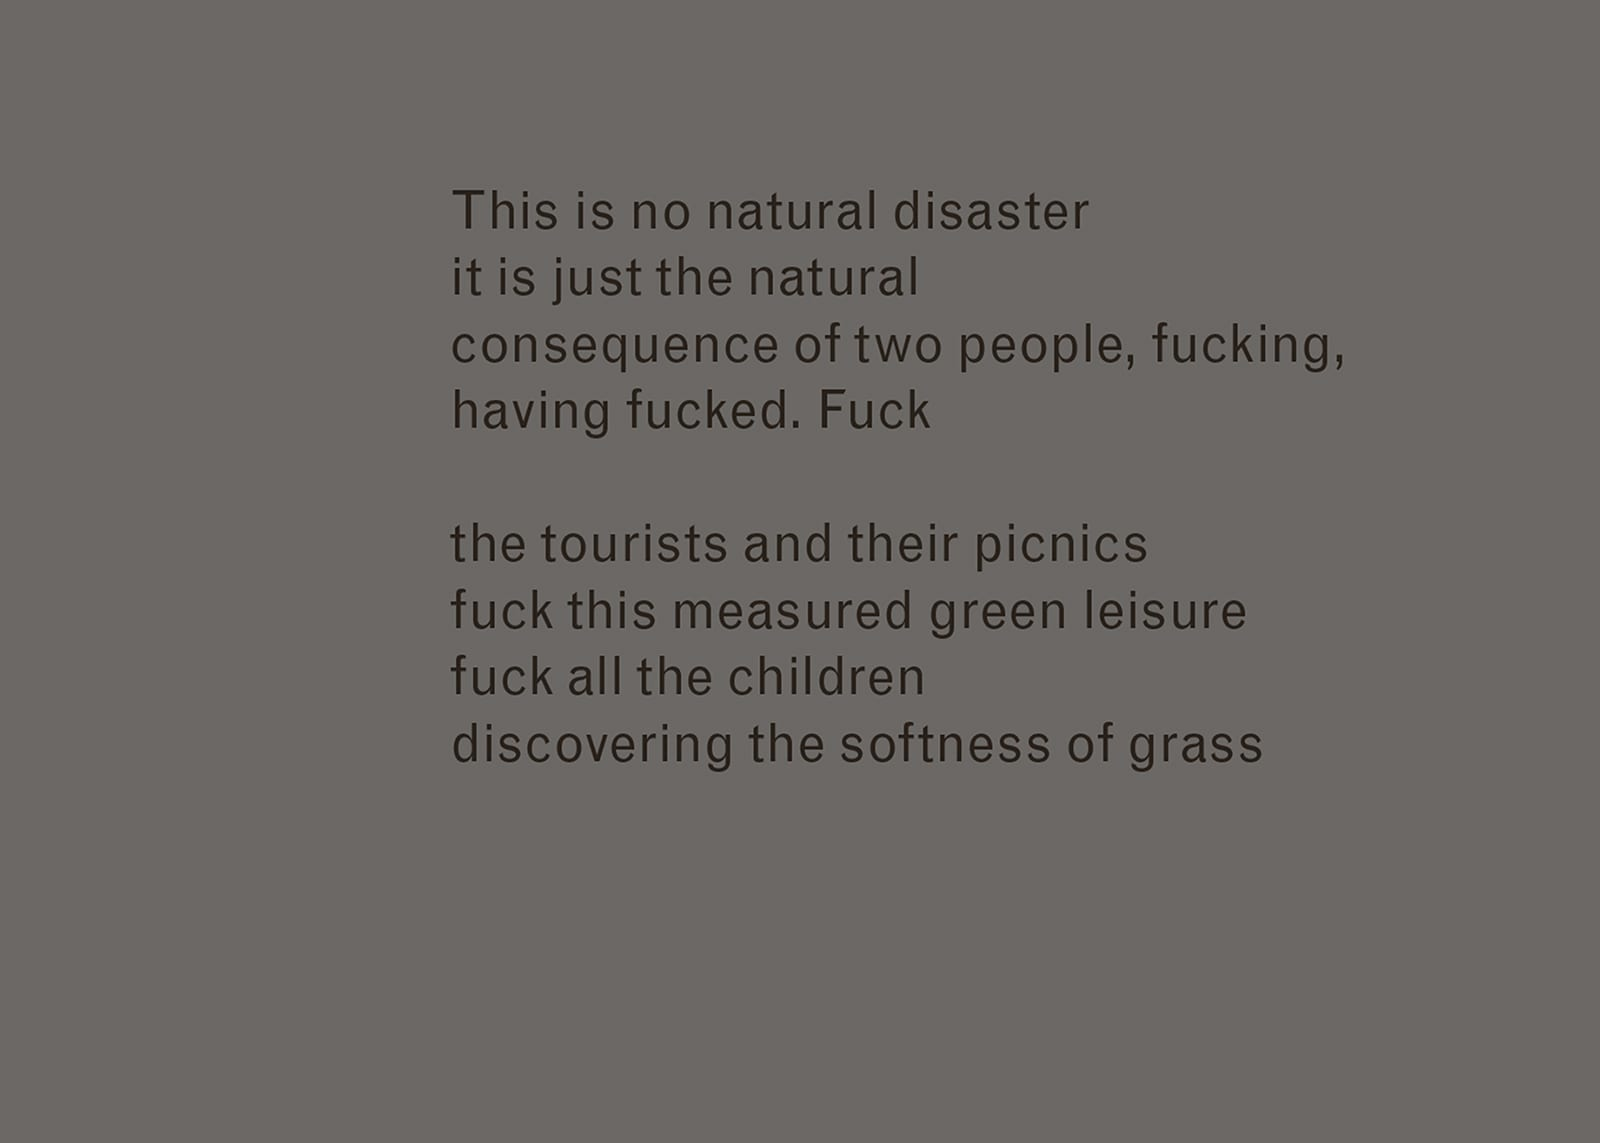 Excerpt of text from Imaginary Explosions. Text reads: This is no natural disaster / it is just the natural / consequence of two people, fucking, / having fucked. Fuck / the tourists and their picnics / fuck this measured green leisure / fuck all the children / discovering the softness of grass